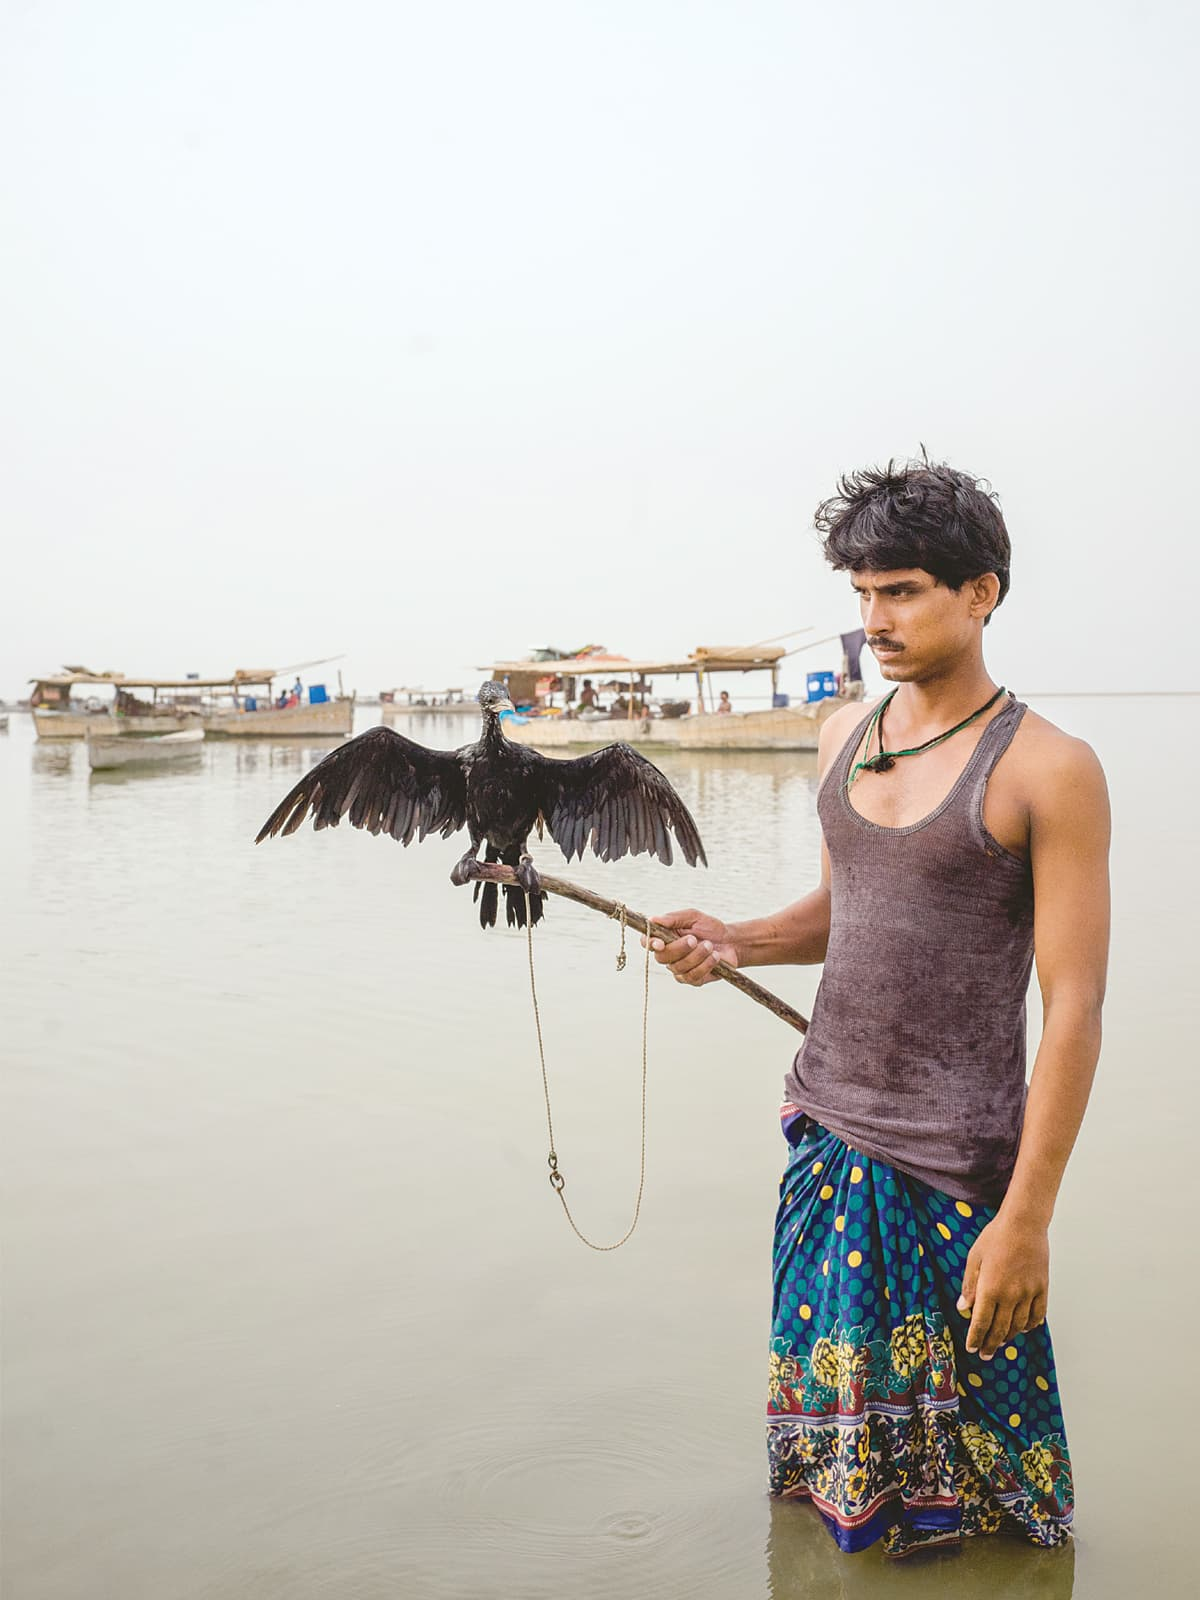 Bird hunting is a routine way to pass time at Manchar Lake